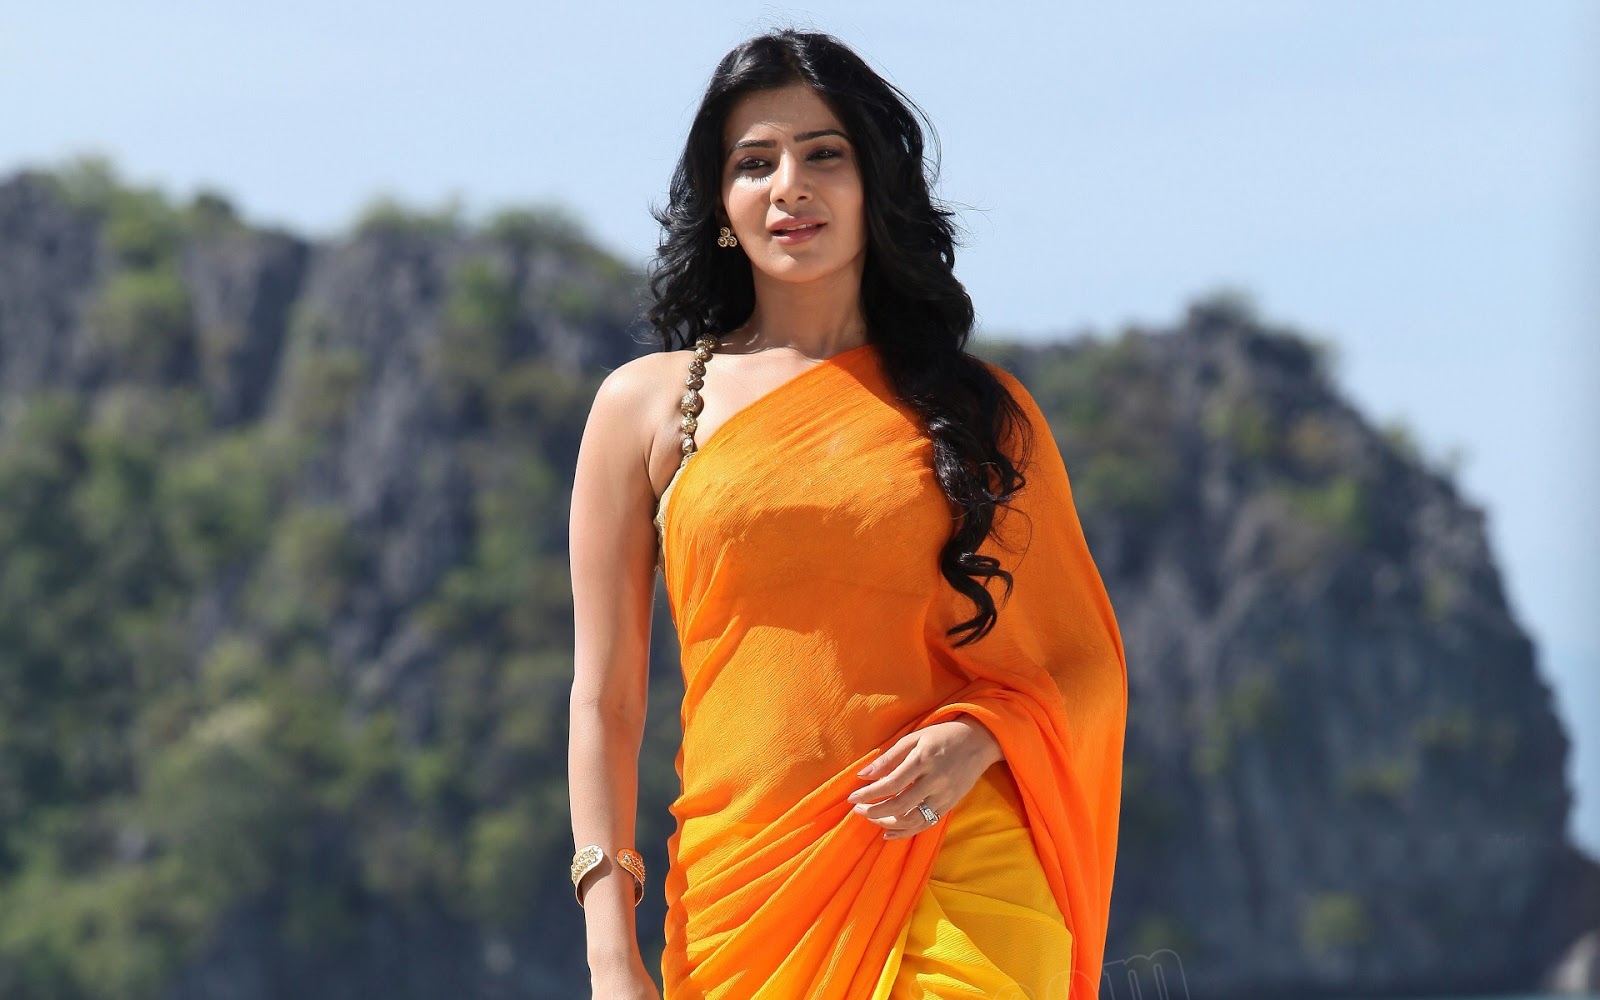 Makkhi Movie Hd Wallpaper Bollywood Actress Images And Hd Wallpapers Samantha Ruth